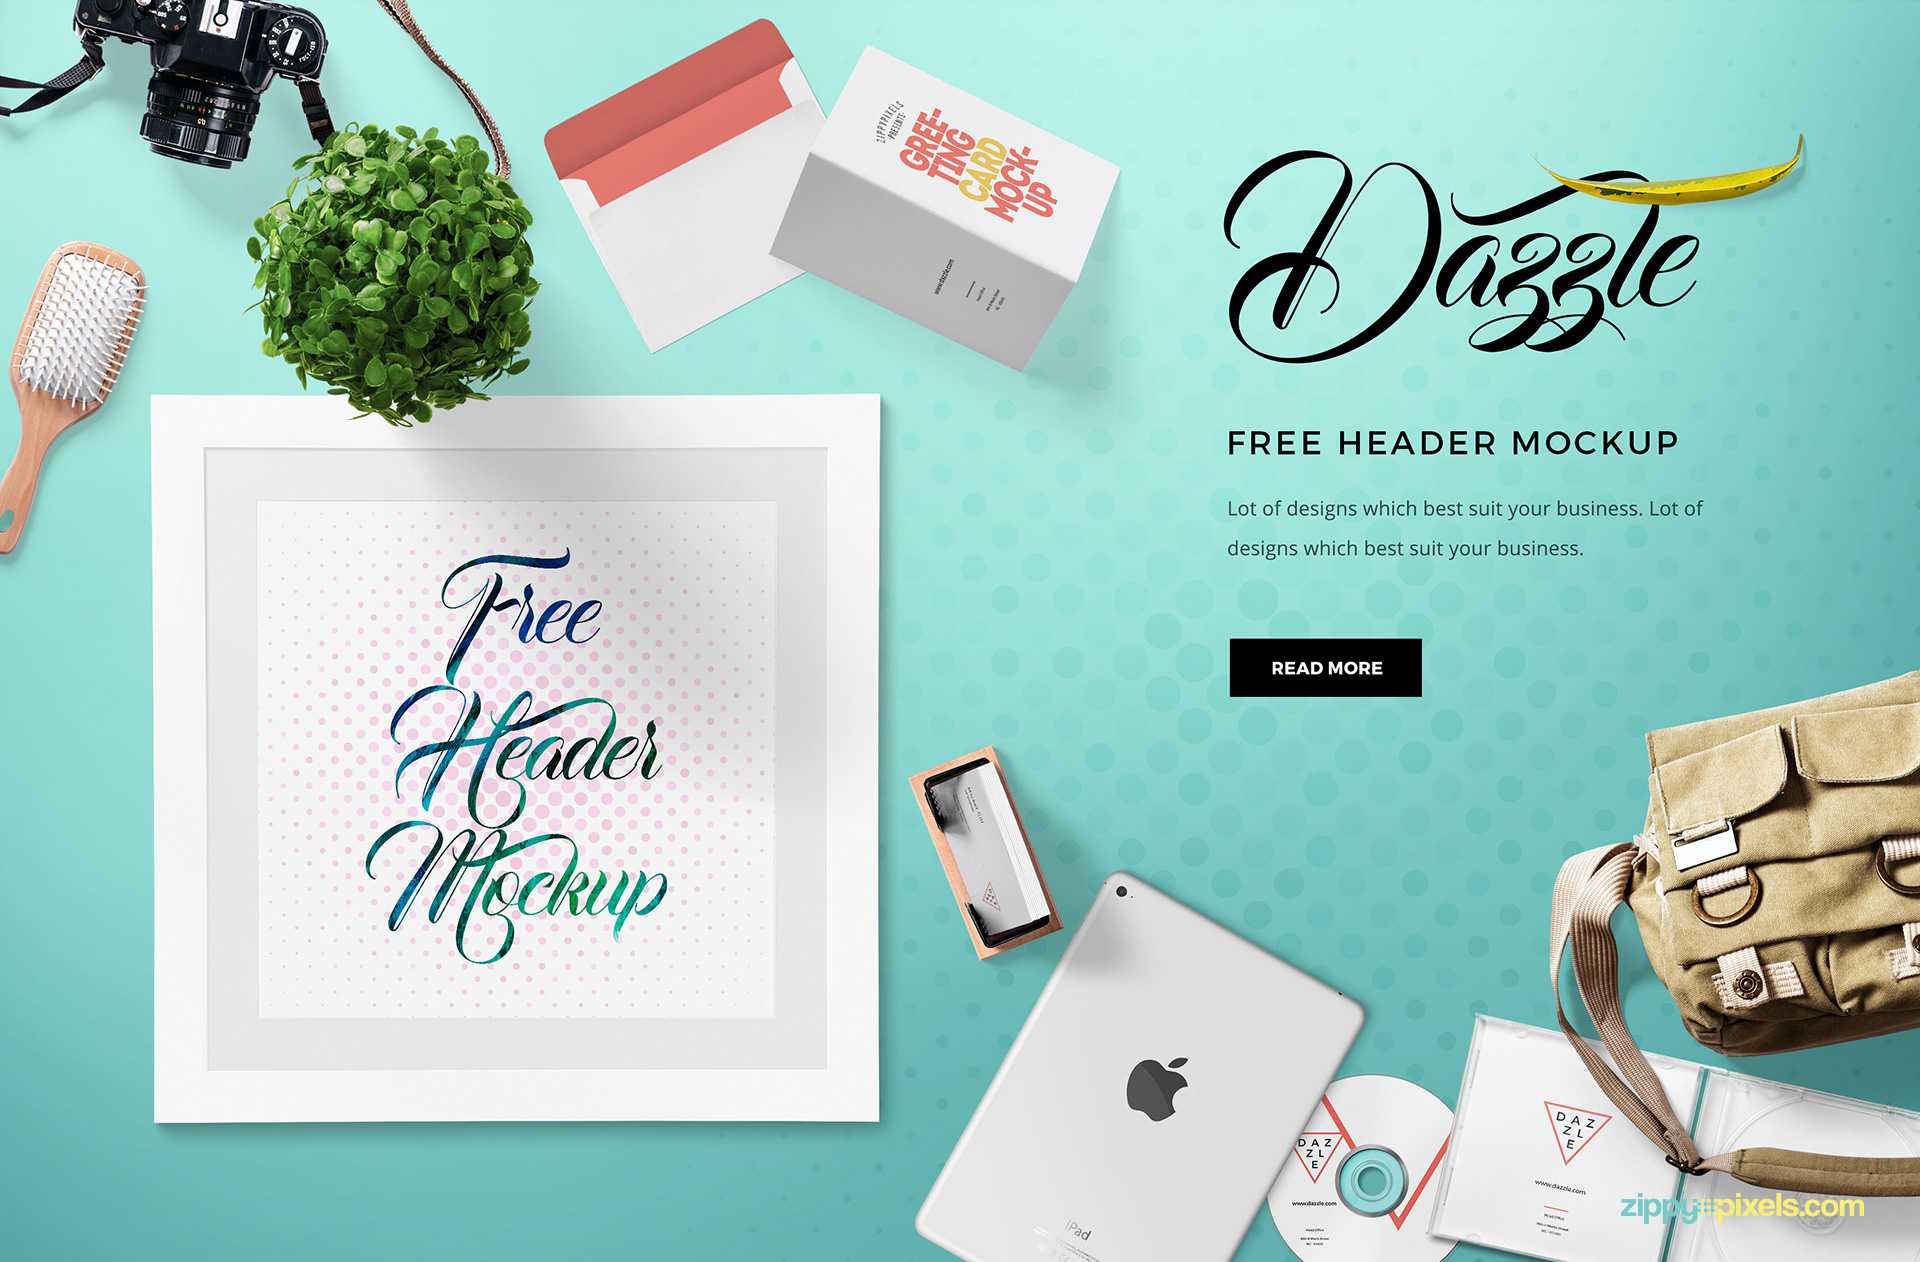 Free hero header mockup with moveable objects.